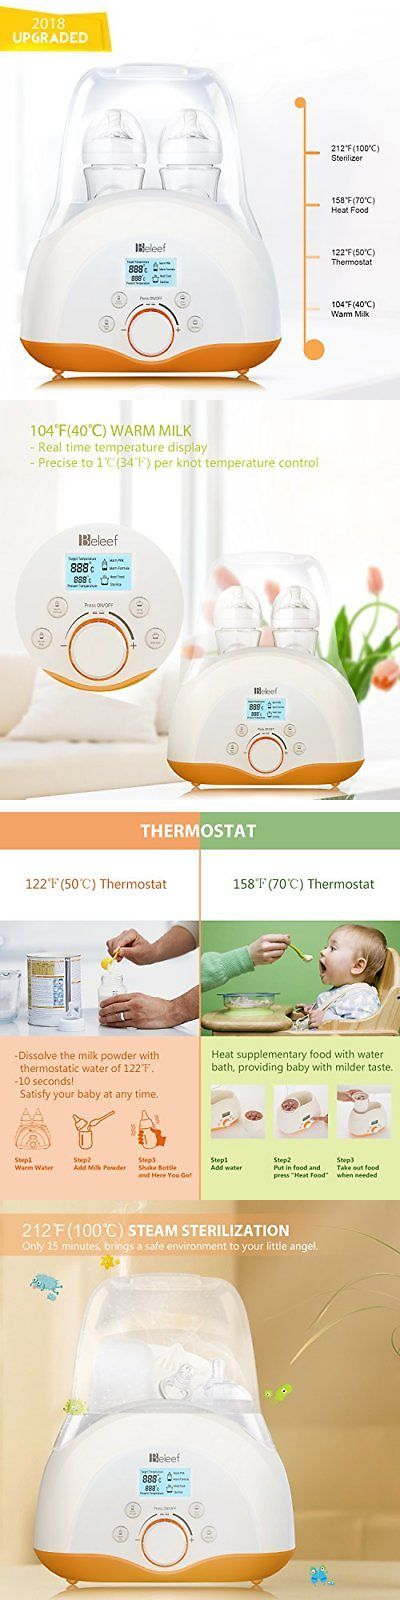 Bottle Sterilizers 106789: Baby Bottle Warmer, Bottle Sterilizer And Smart Thermostat 4-In-1 With Fast... -> BUY IT NOW ONLY: $74.69 on eBay!